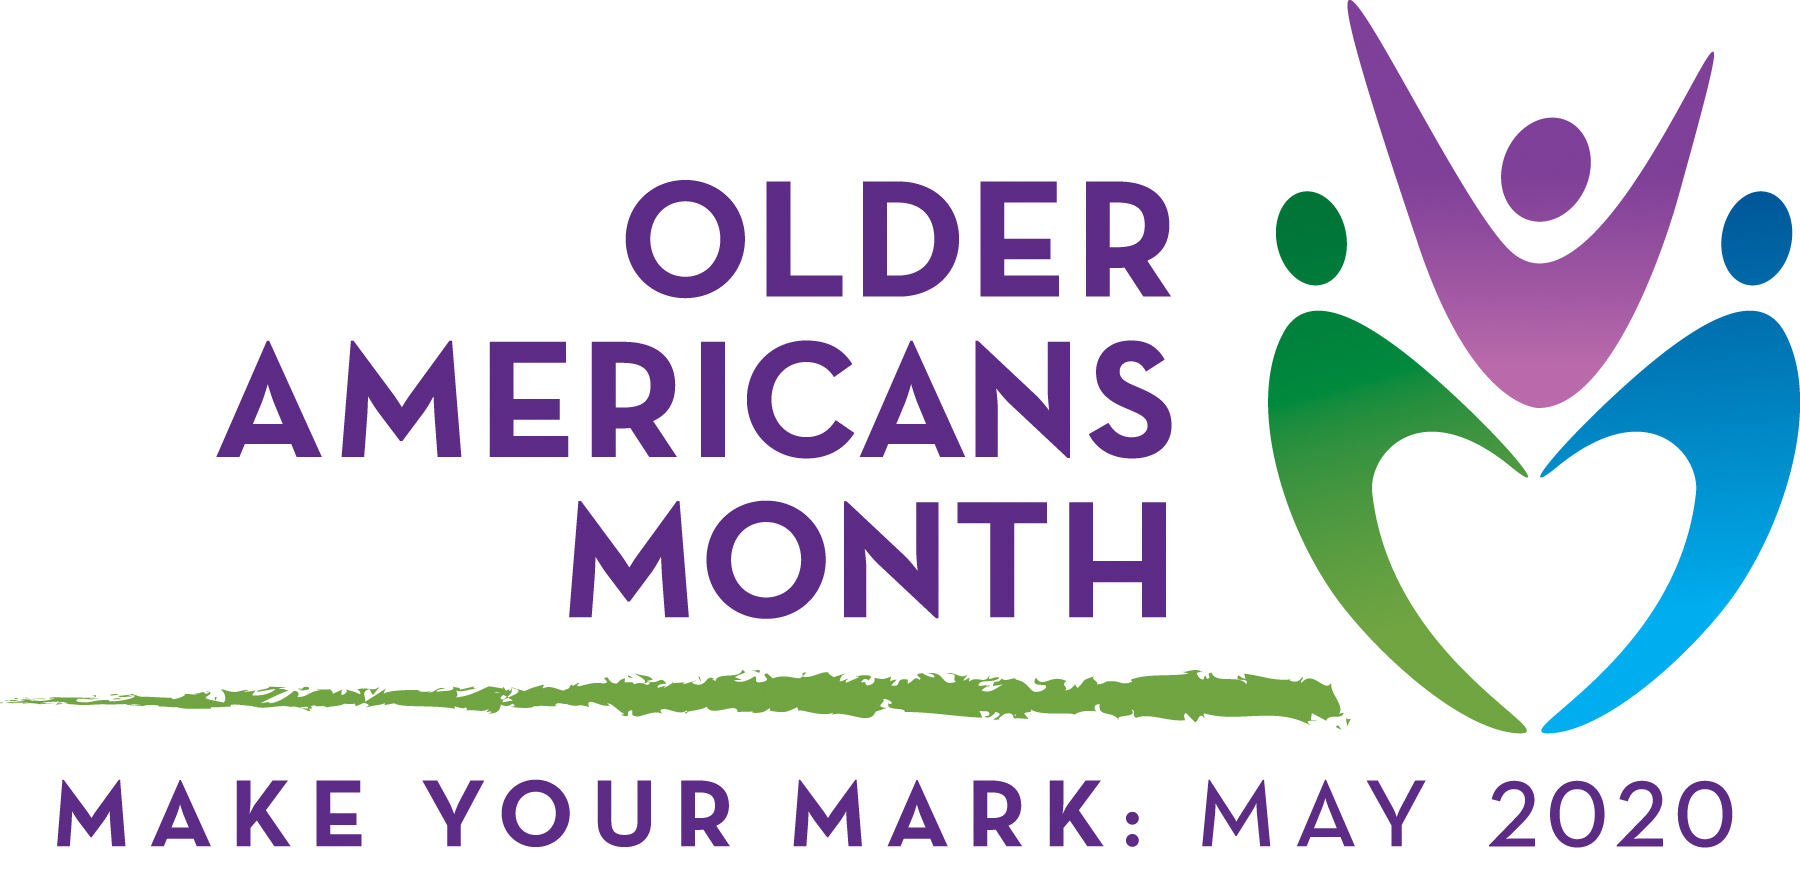 Older Americans Month Display